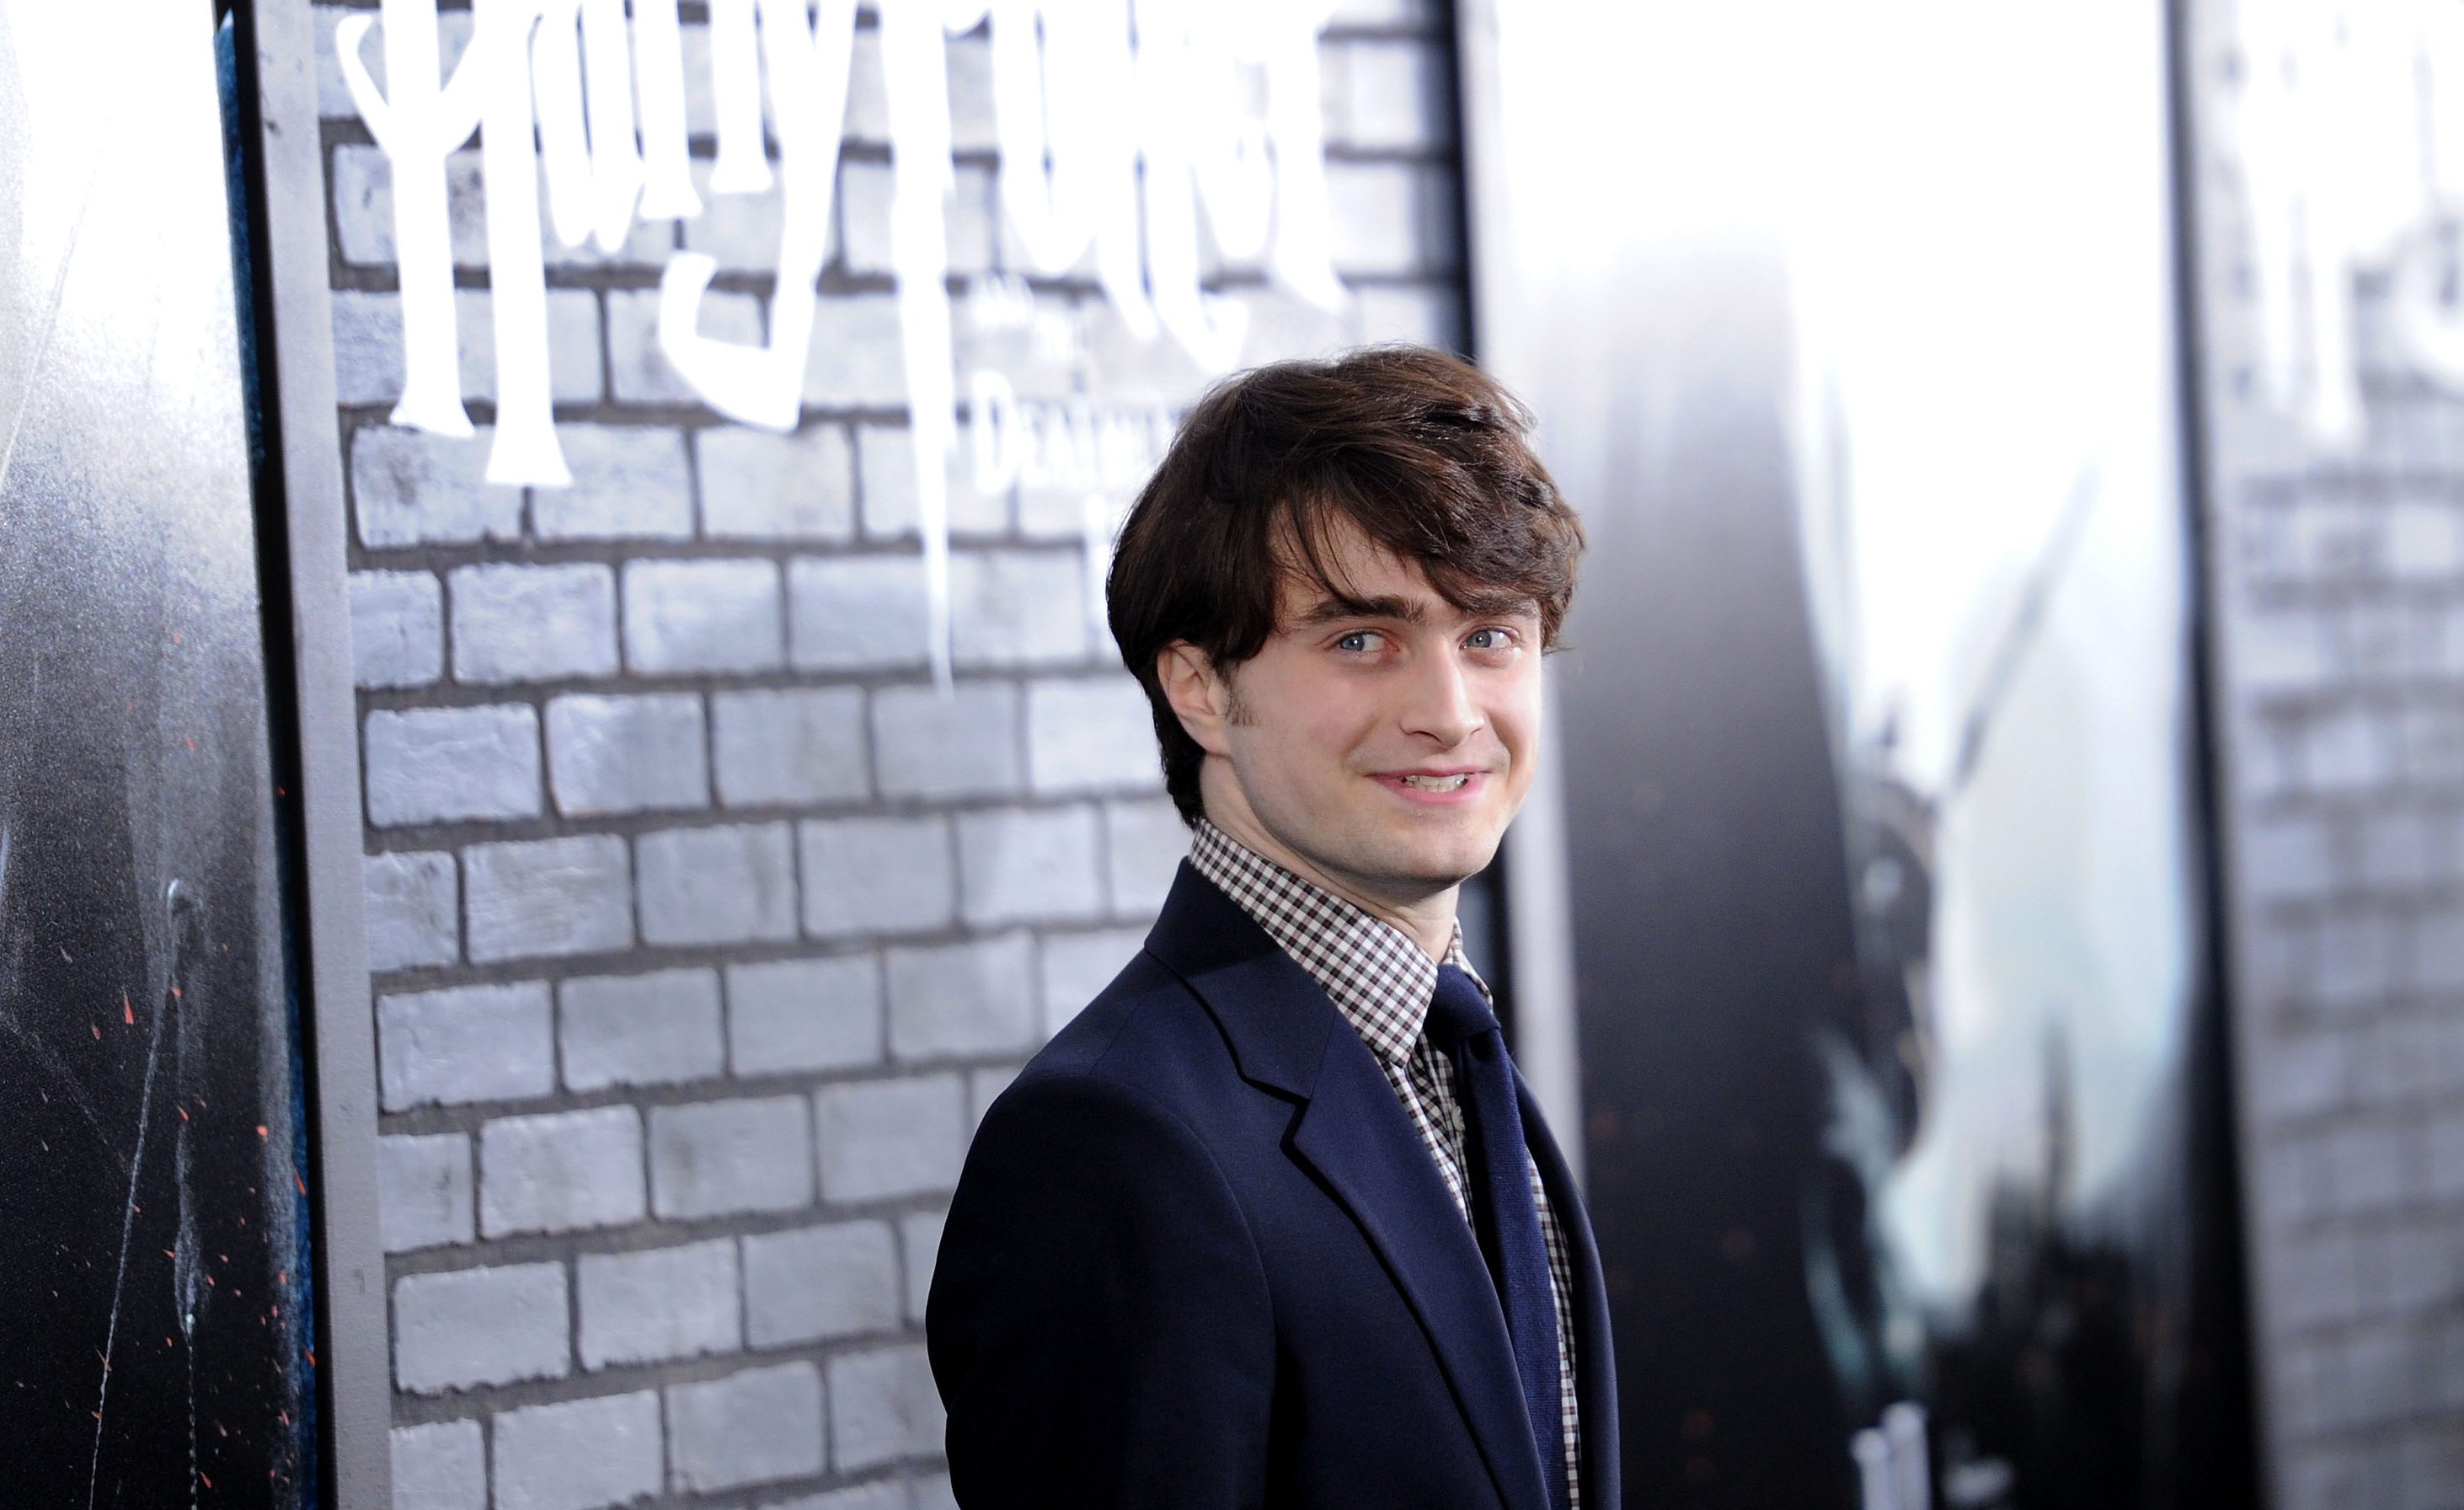 Daniel Radcliffe says Harry Potter will 'definitely' be rebooted